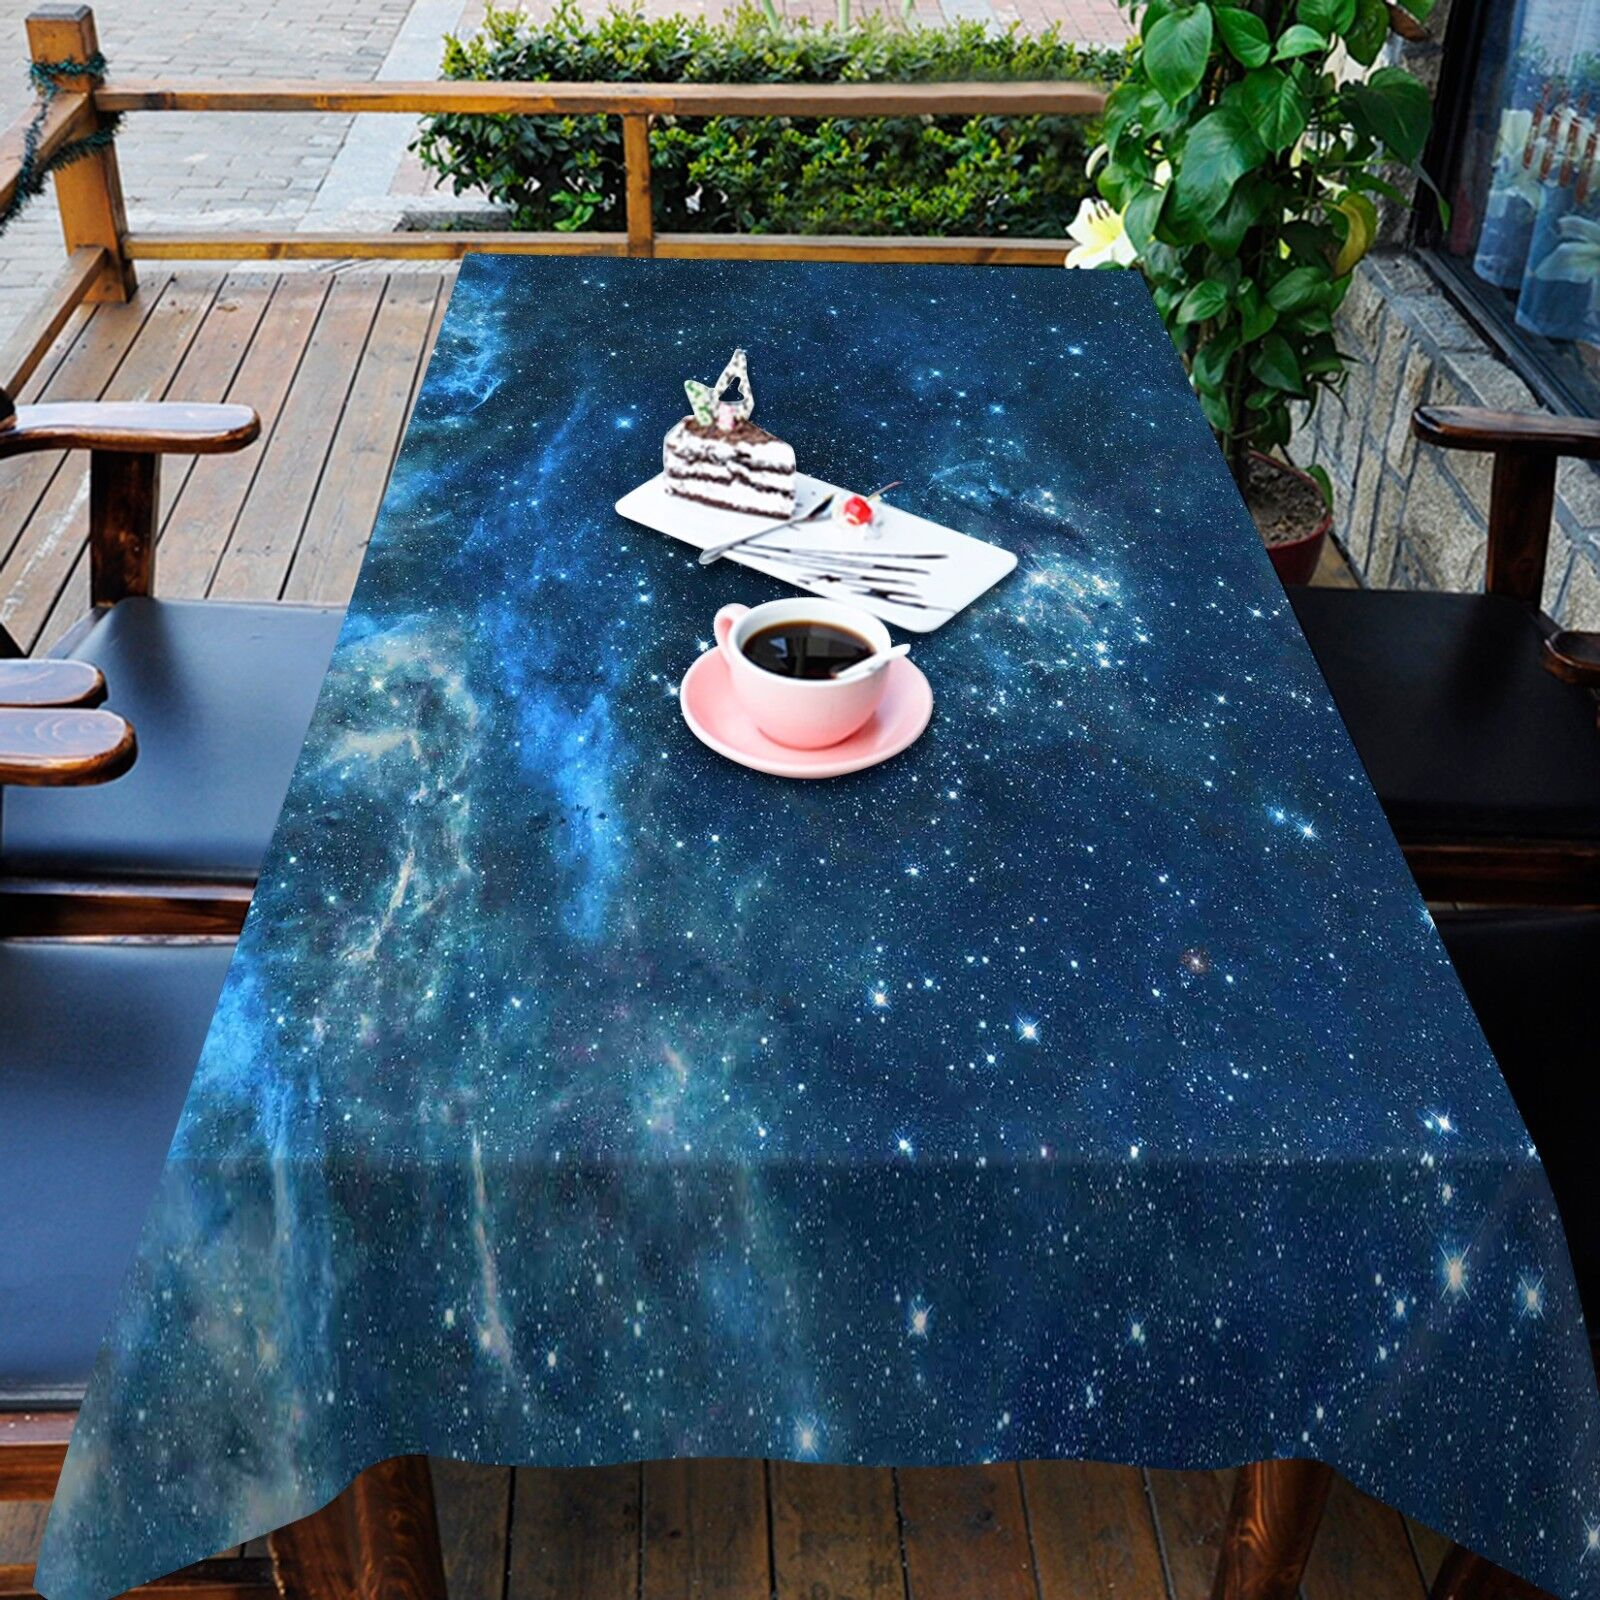 3D Sky Stars 5 Tablecloth Table Cover Cloth Birthday Party AJ WALLPAPER UK Lemon